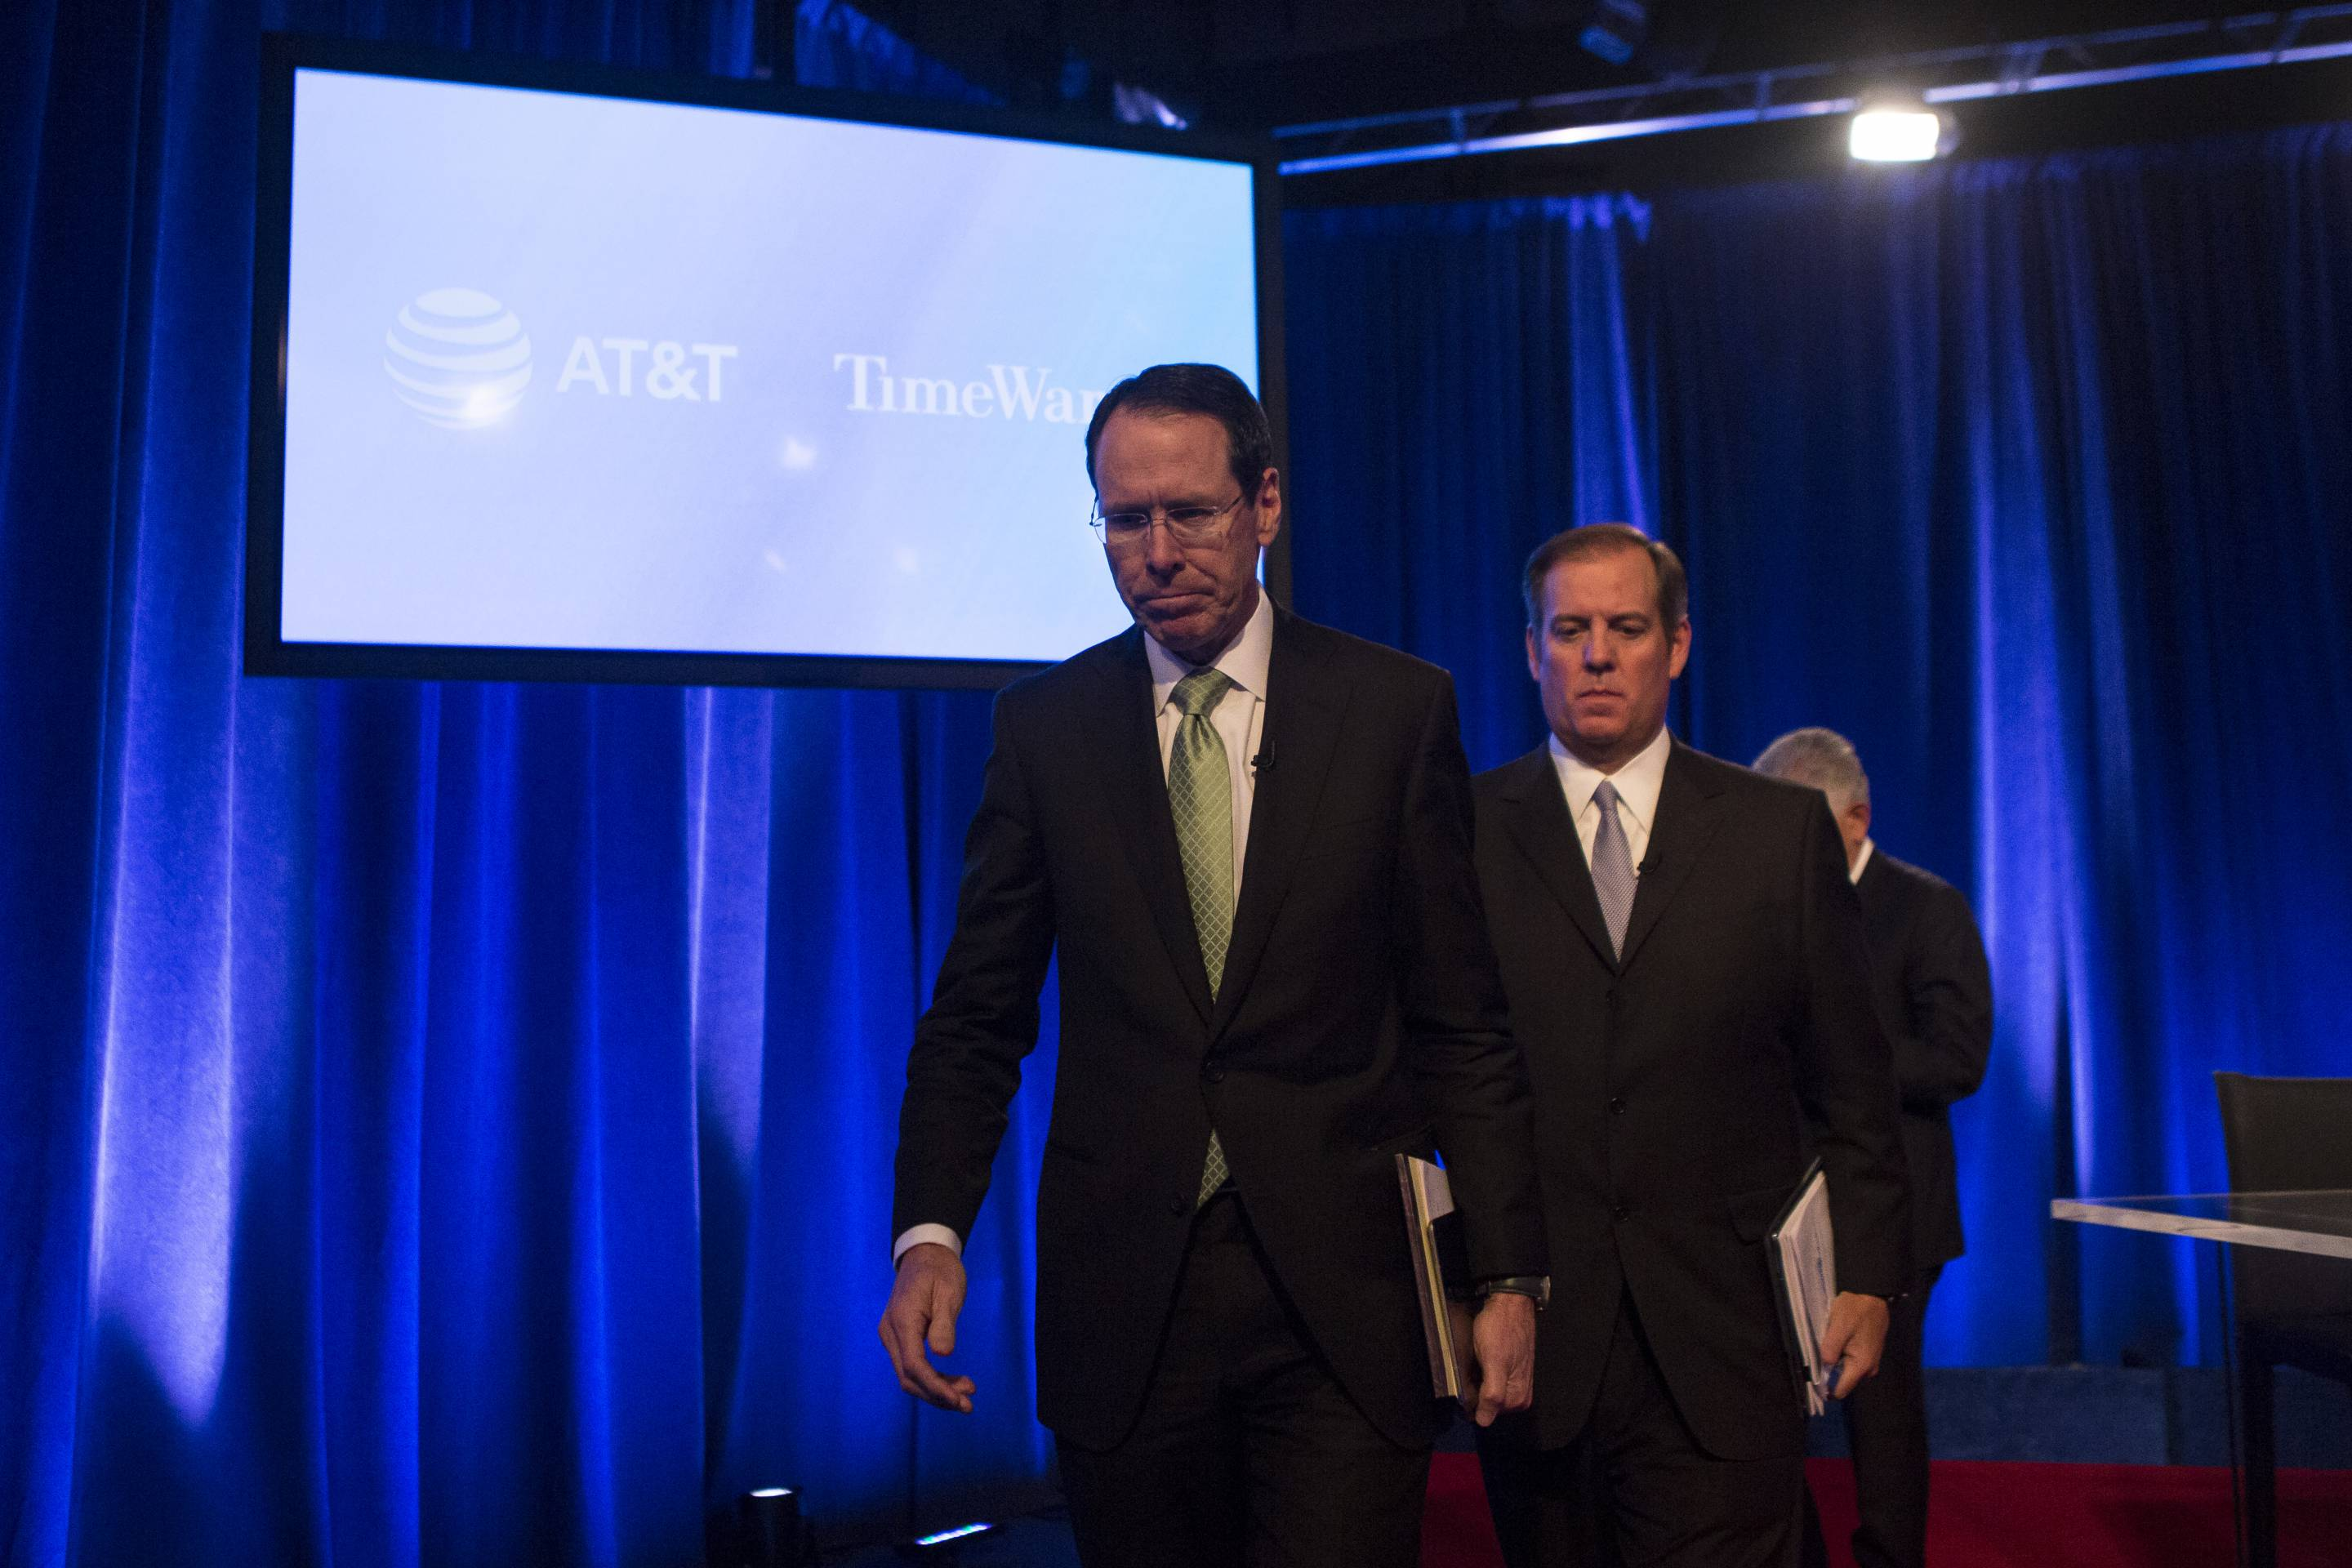 AT&T CEO Randall Stephenson Discusses Justice Dept. Lawsuit Over Company's Time Warner Merger